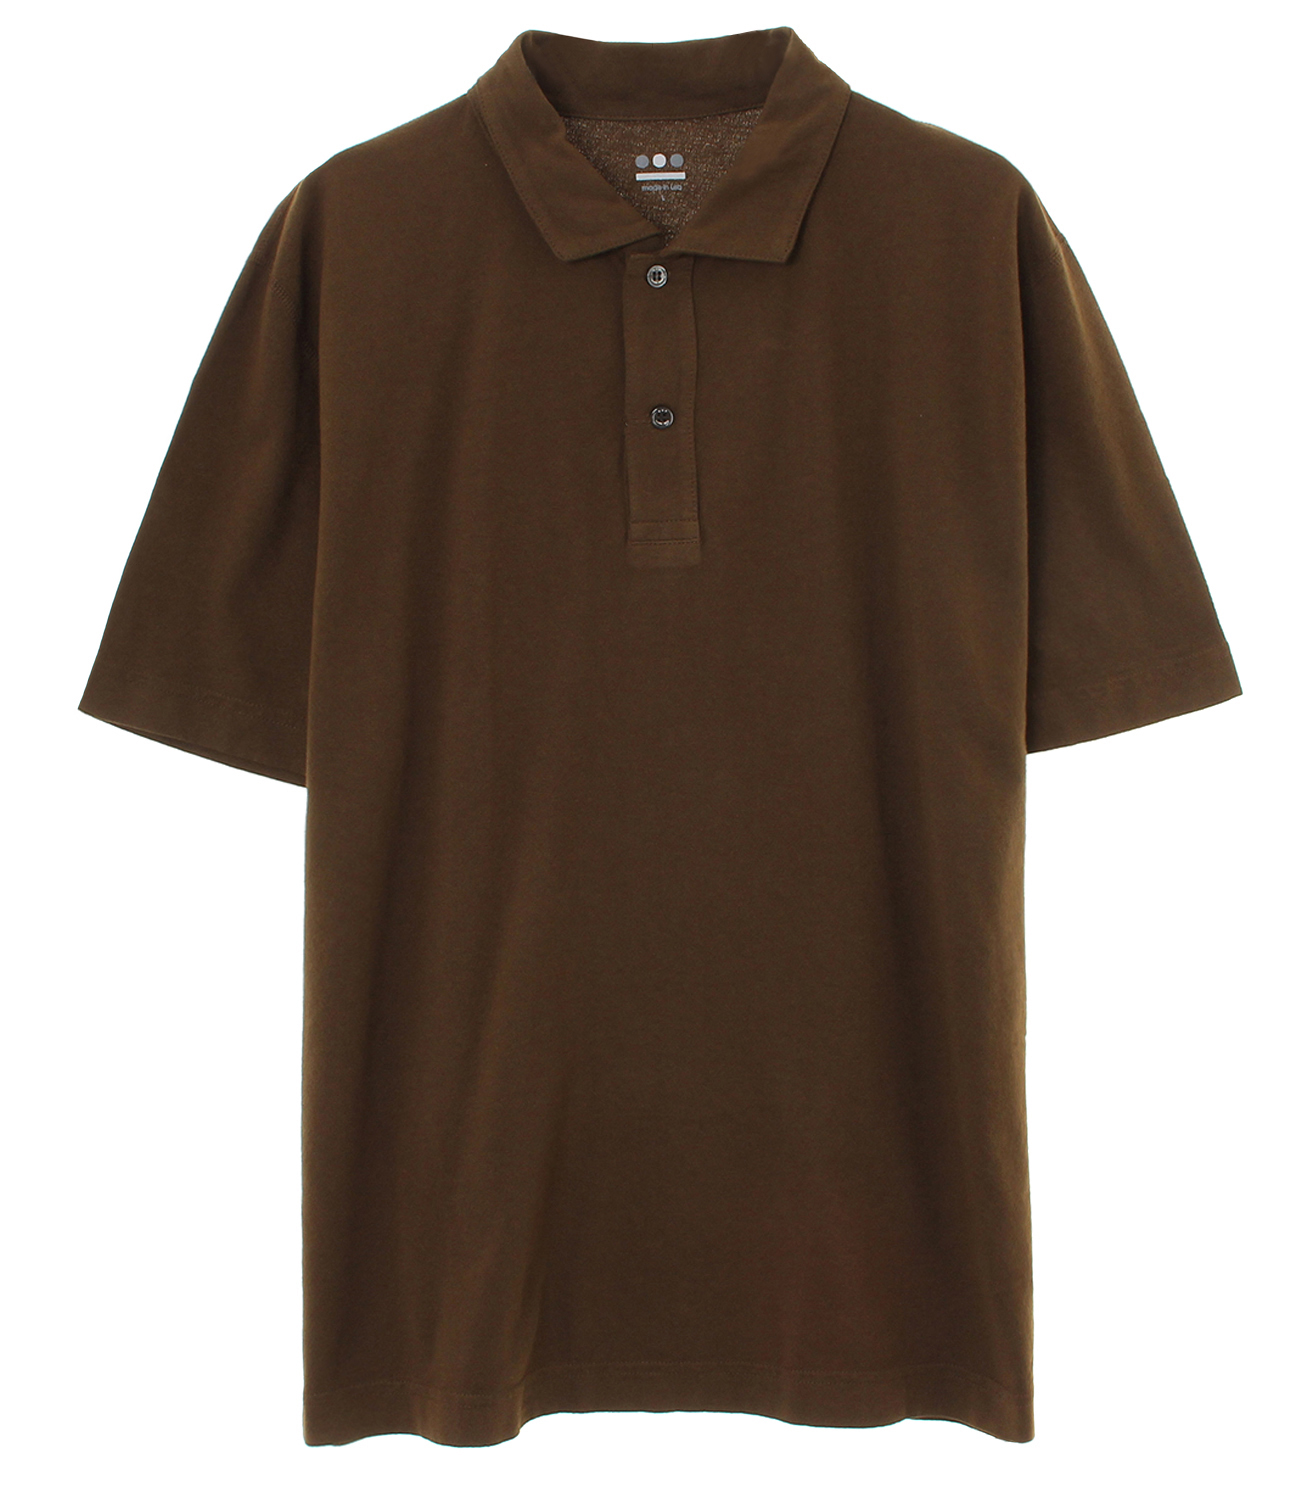 short slv polo 詳細画像 olive brunch 1